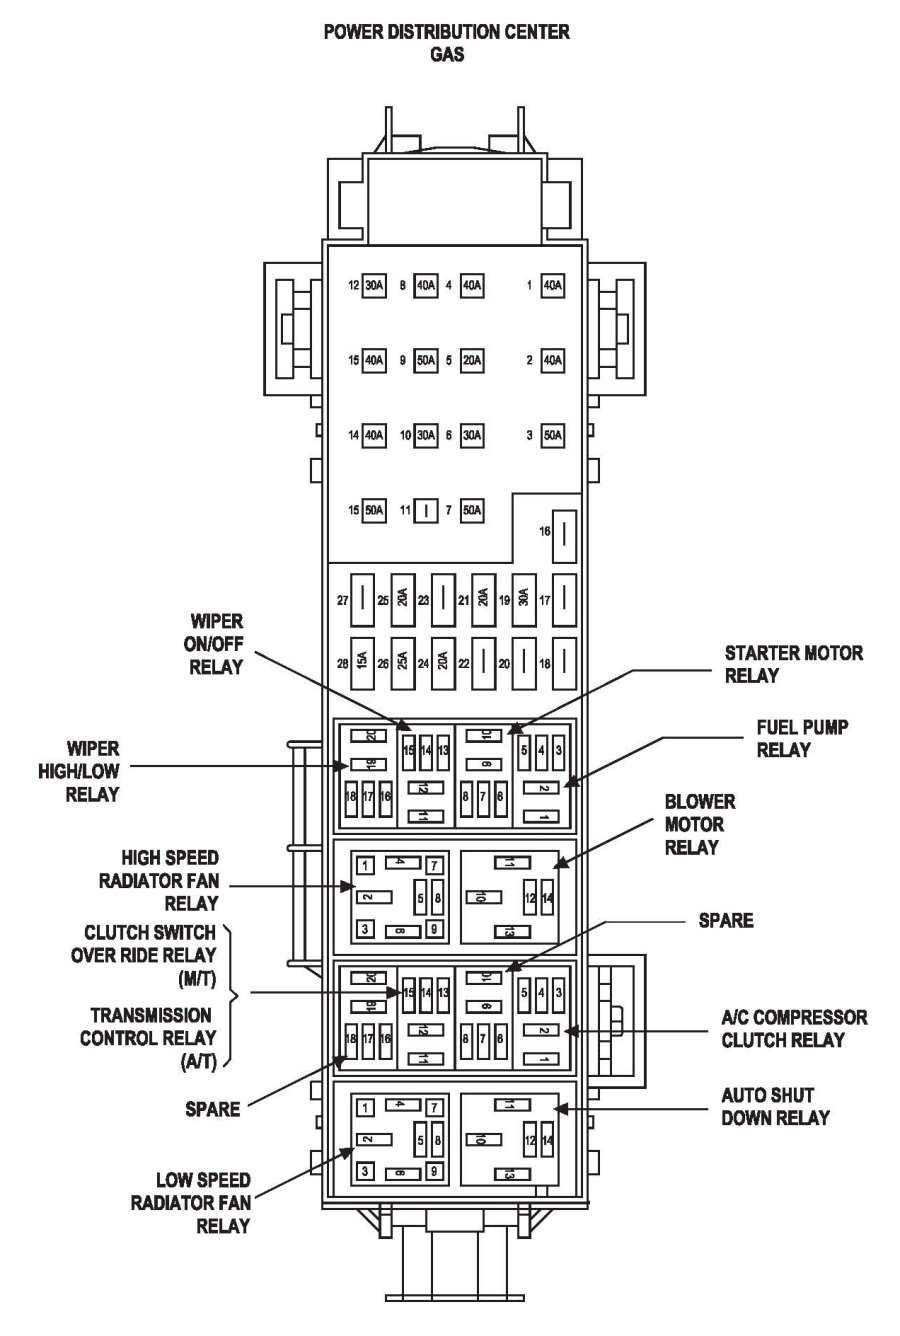 hight resolution of 05 jeep wrangler fuse diagram wiring diagram 2005 jeep wrangler wiring diagram free 05 jeep wrangler